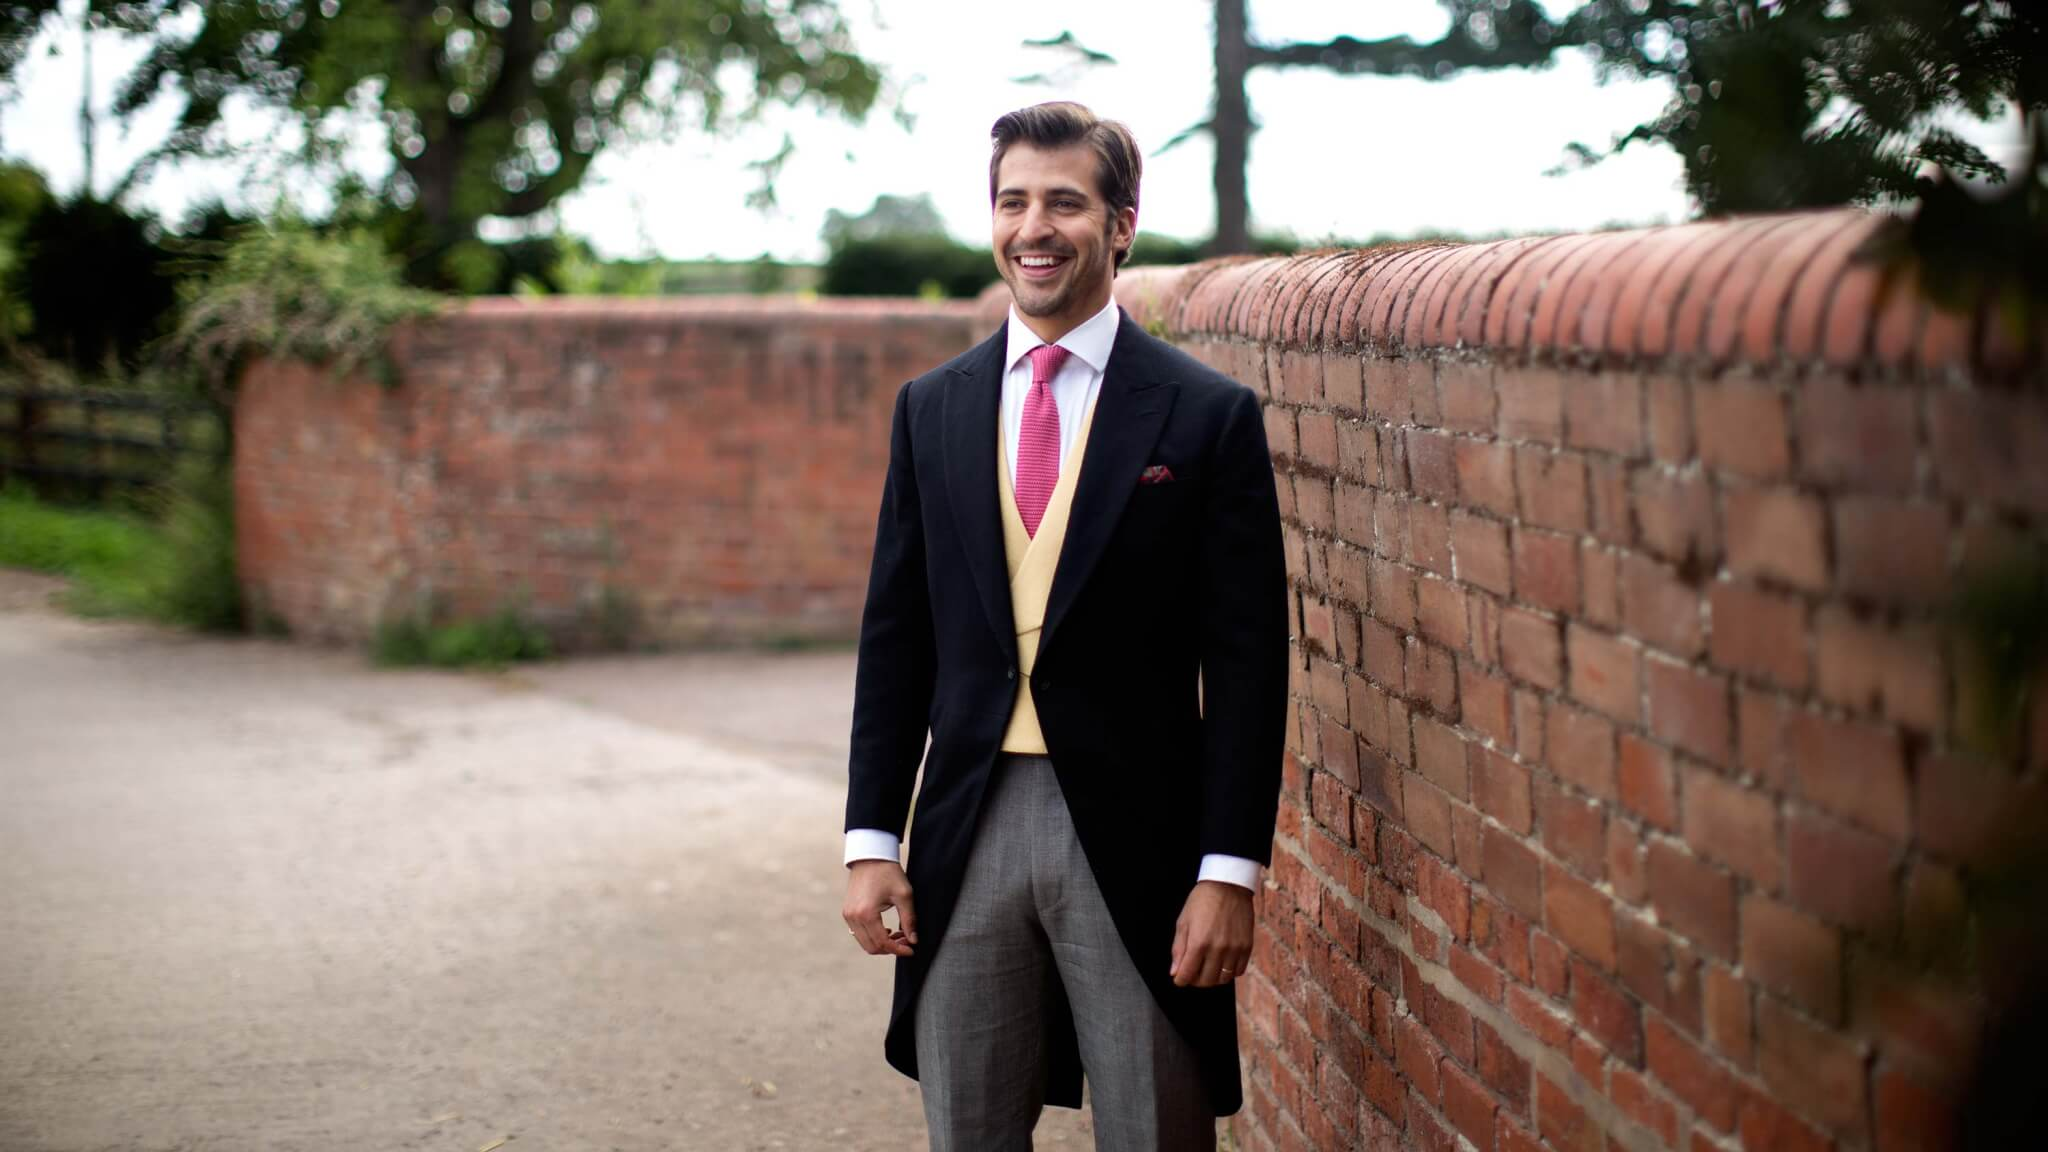 Bespoke Wedding Suits